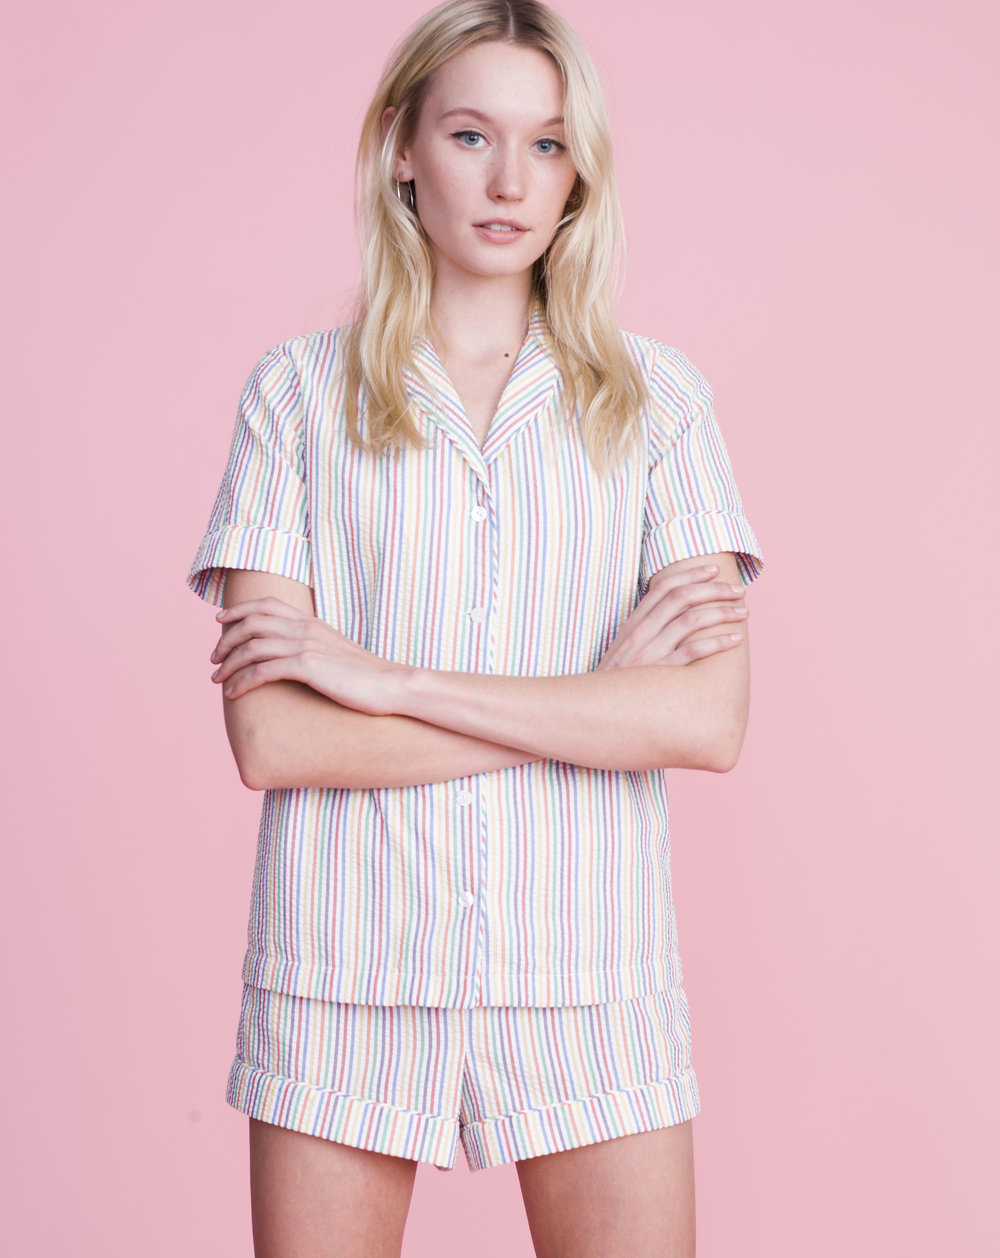 RAINBOW STRIPE - SHOP NOW